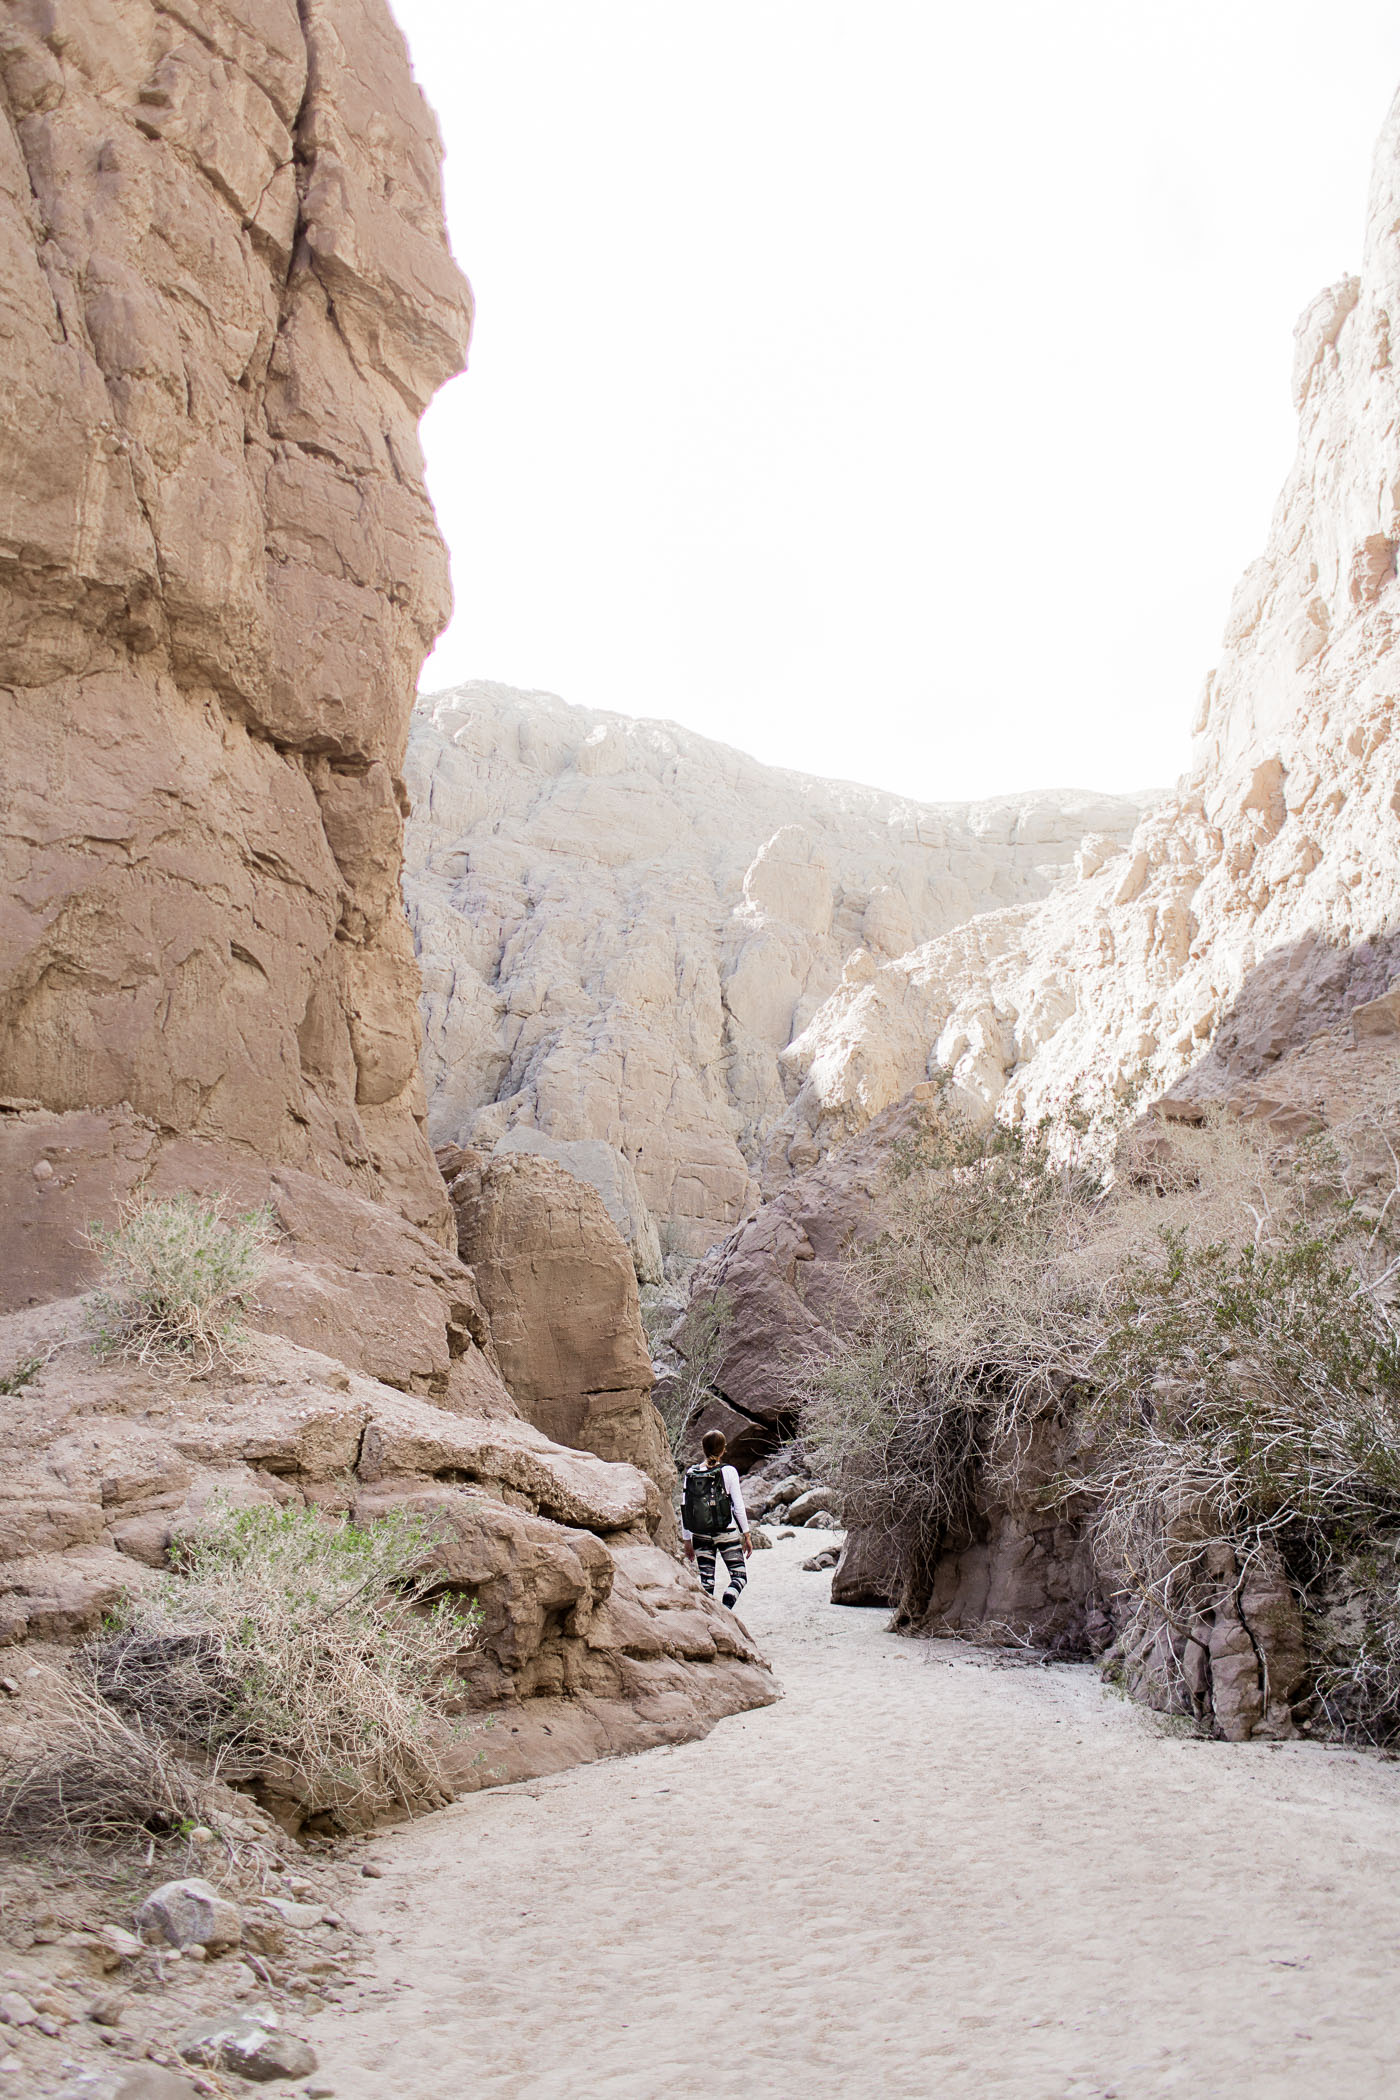 Mecca Hills Painted Canyon Ladder Hike near Palm Springs and Coachella Valley, California